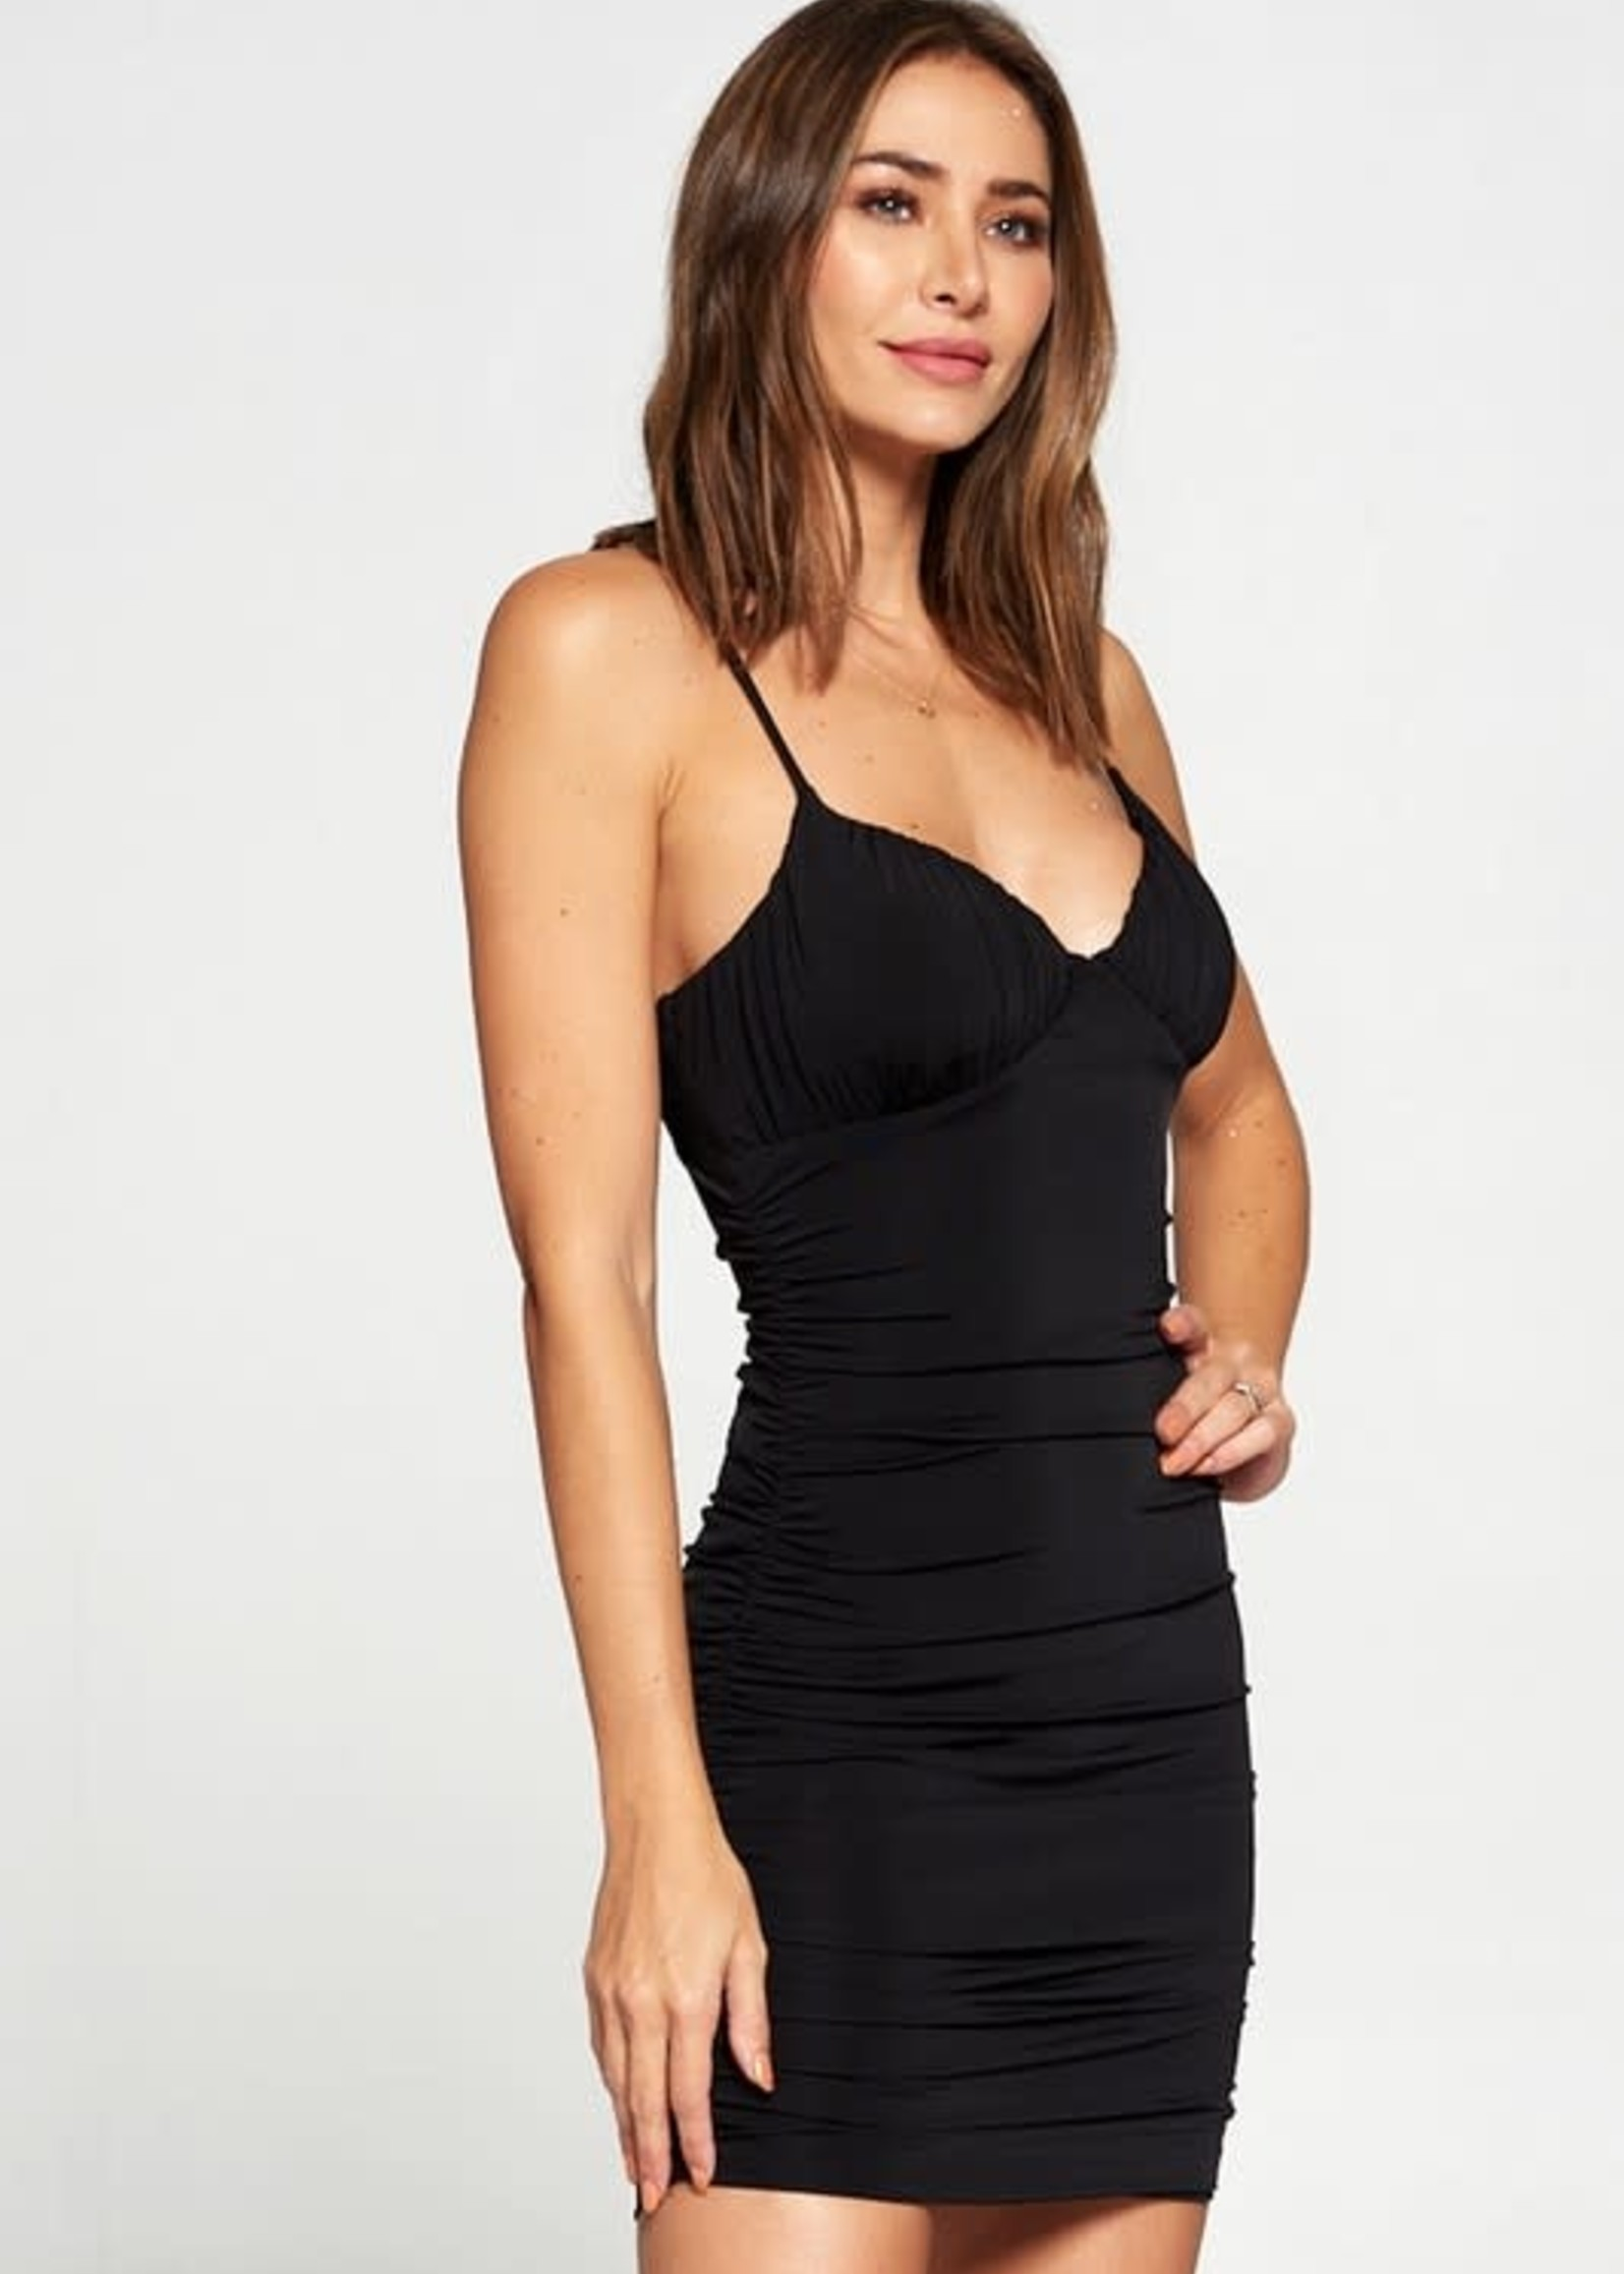 Best Party Ever Dress